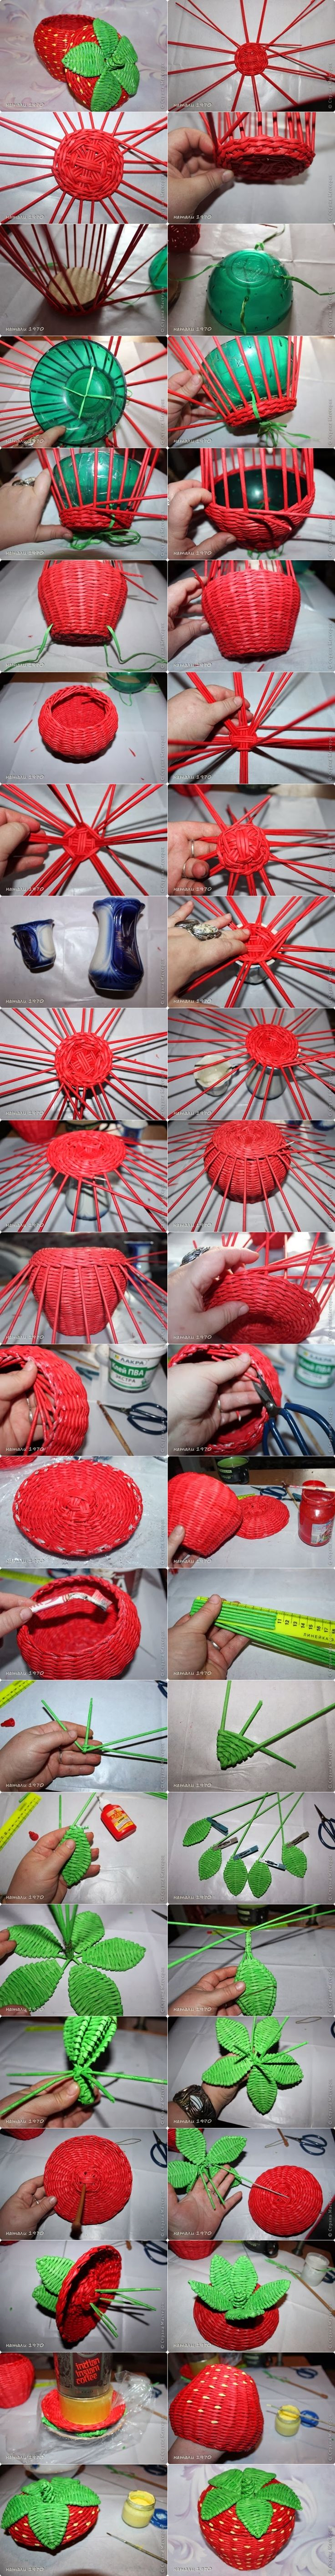 eperkosár DIY Woven Strawberry Shaped Basket from Recycled Newspaper | www.FabArtDIY.com LIKE Us on Facebook ==> https://www.facebook.com/FabArtDIY